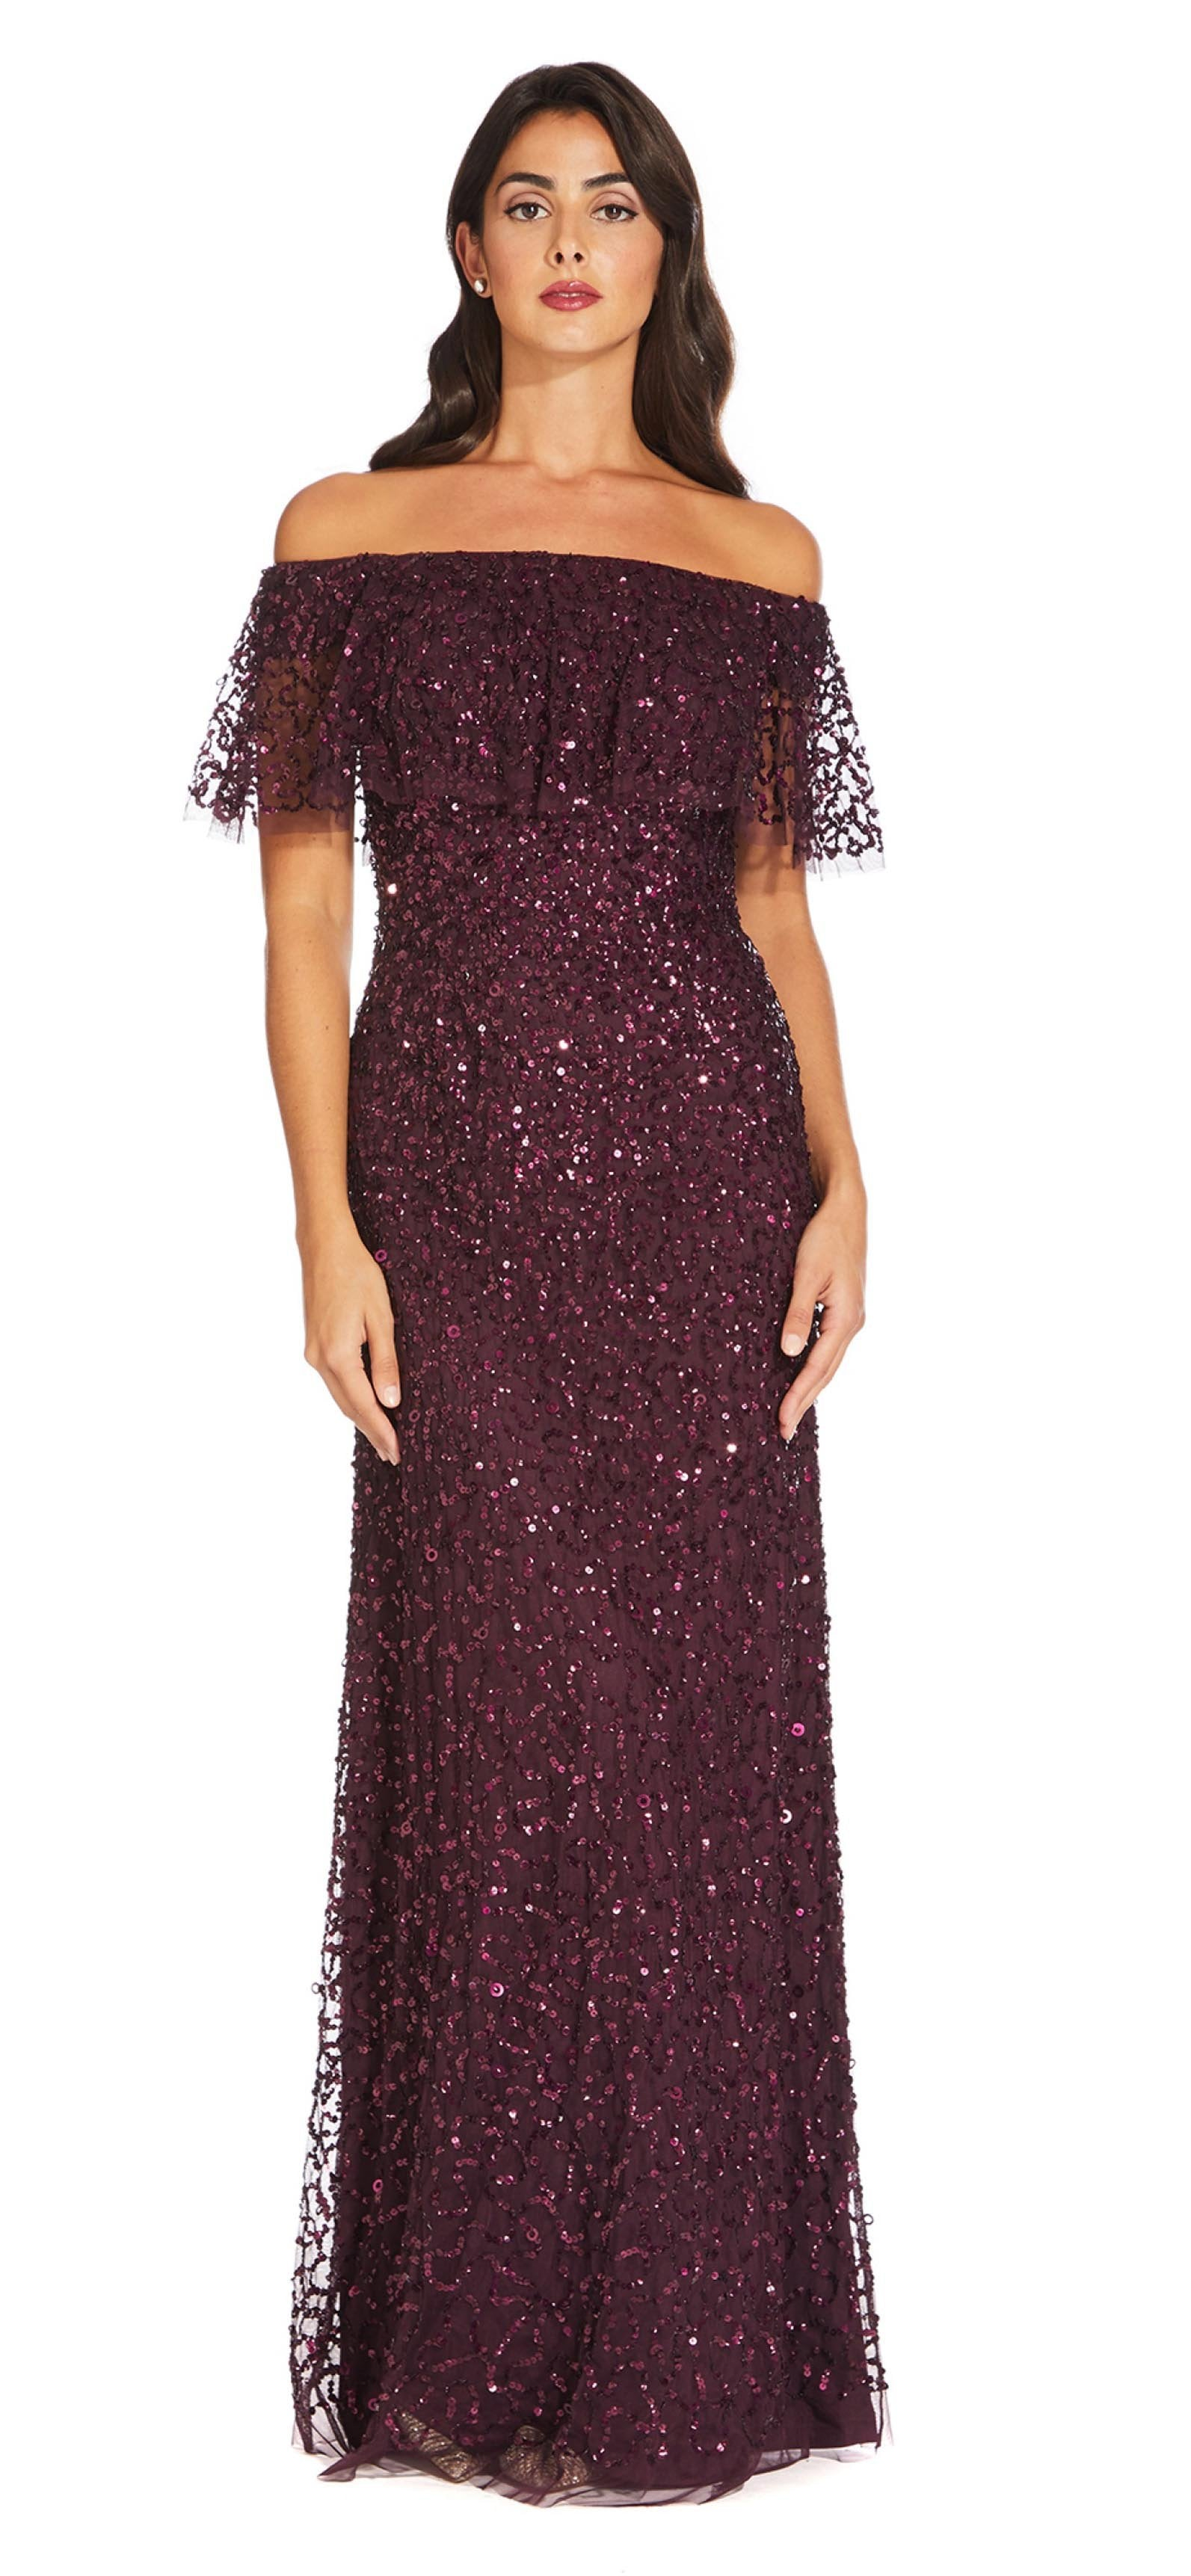 Adrianna Papell - AP1E204277 Sequin Embellished Off-Shoulder Dress In Purple